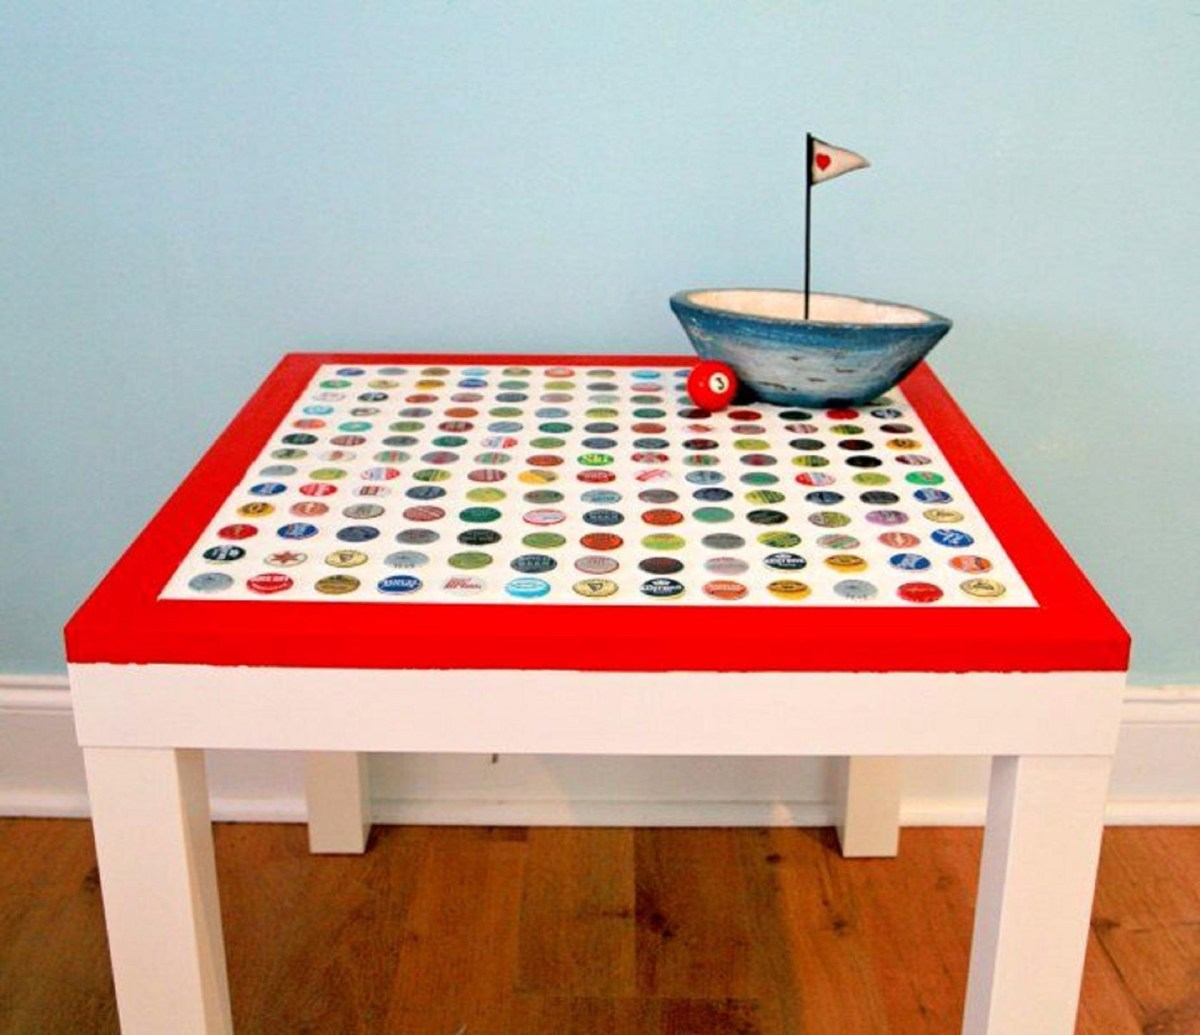 Chic bottlecap table DIY Out Of The Box Bottle Cap Craft Ideas That Kids And Adult Can Create Together